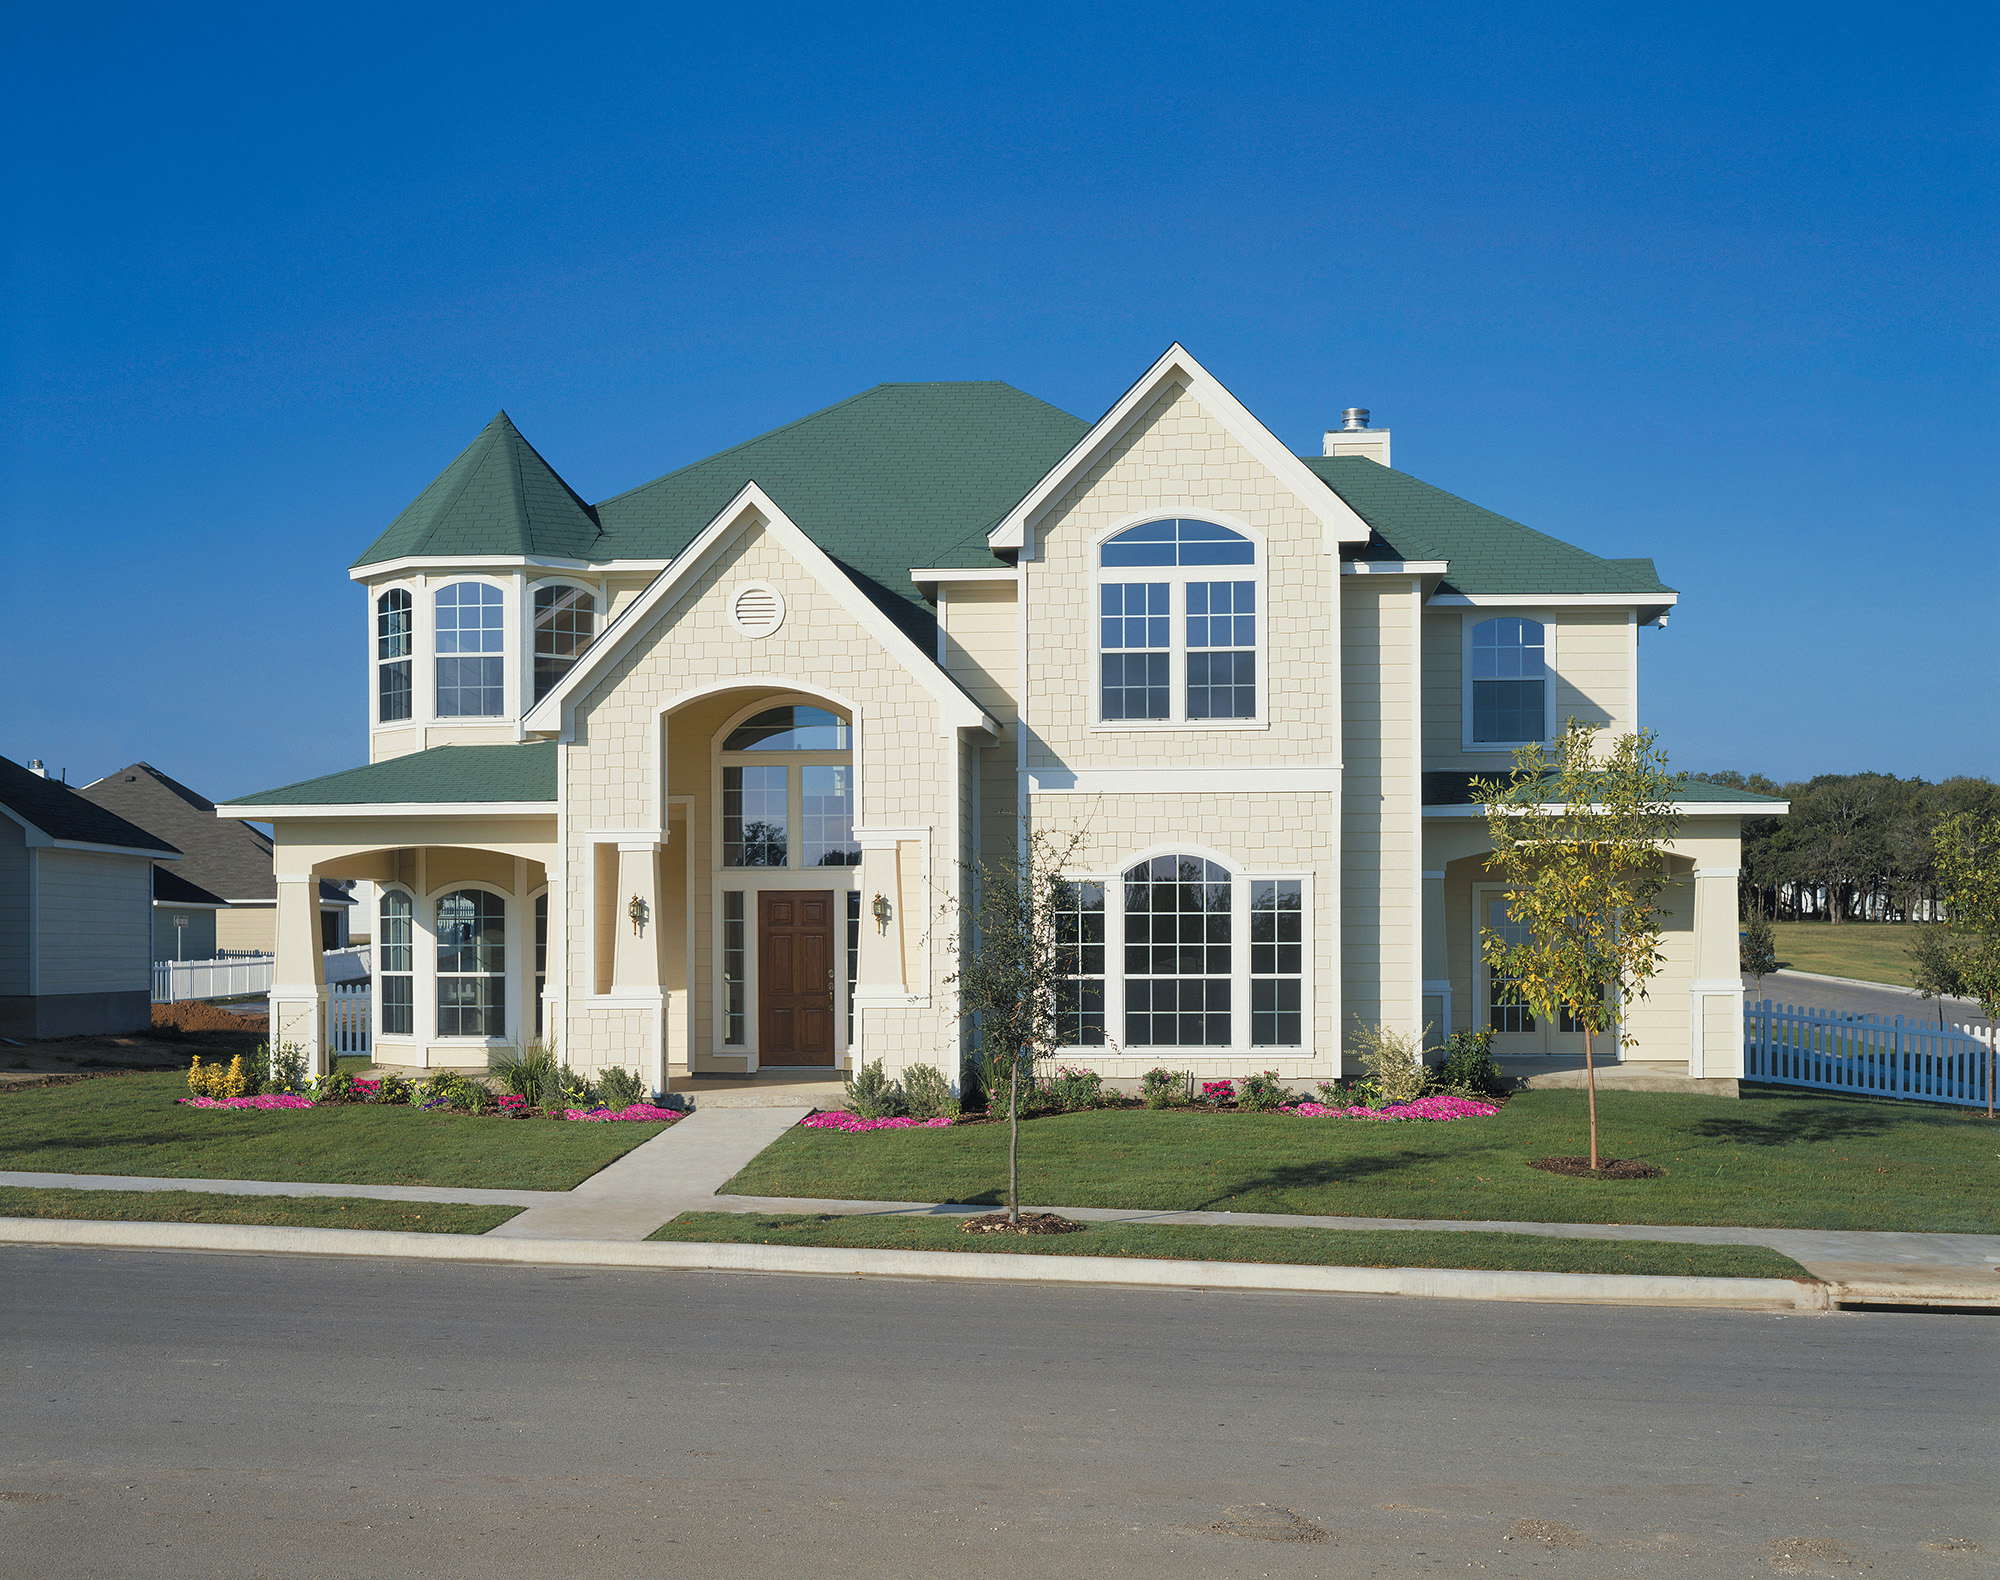 Cover Up Construction - Siding is a perfect way to give your home curb appeal.